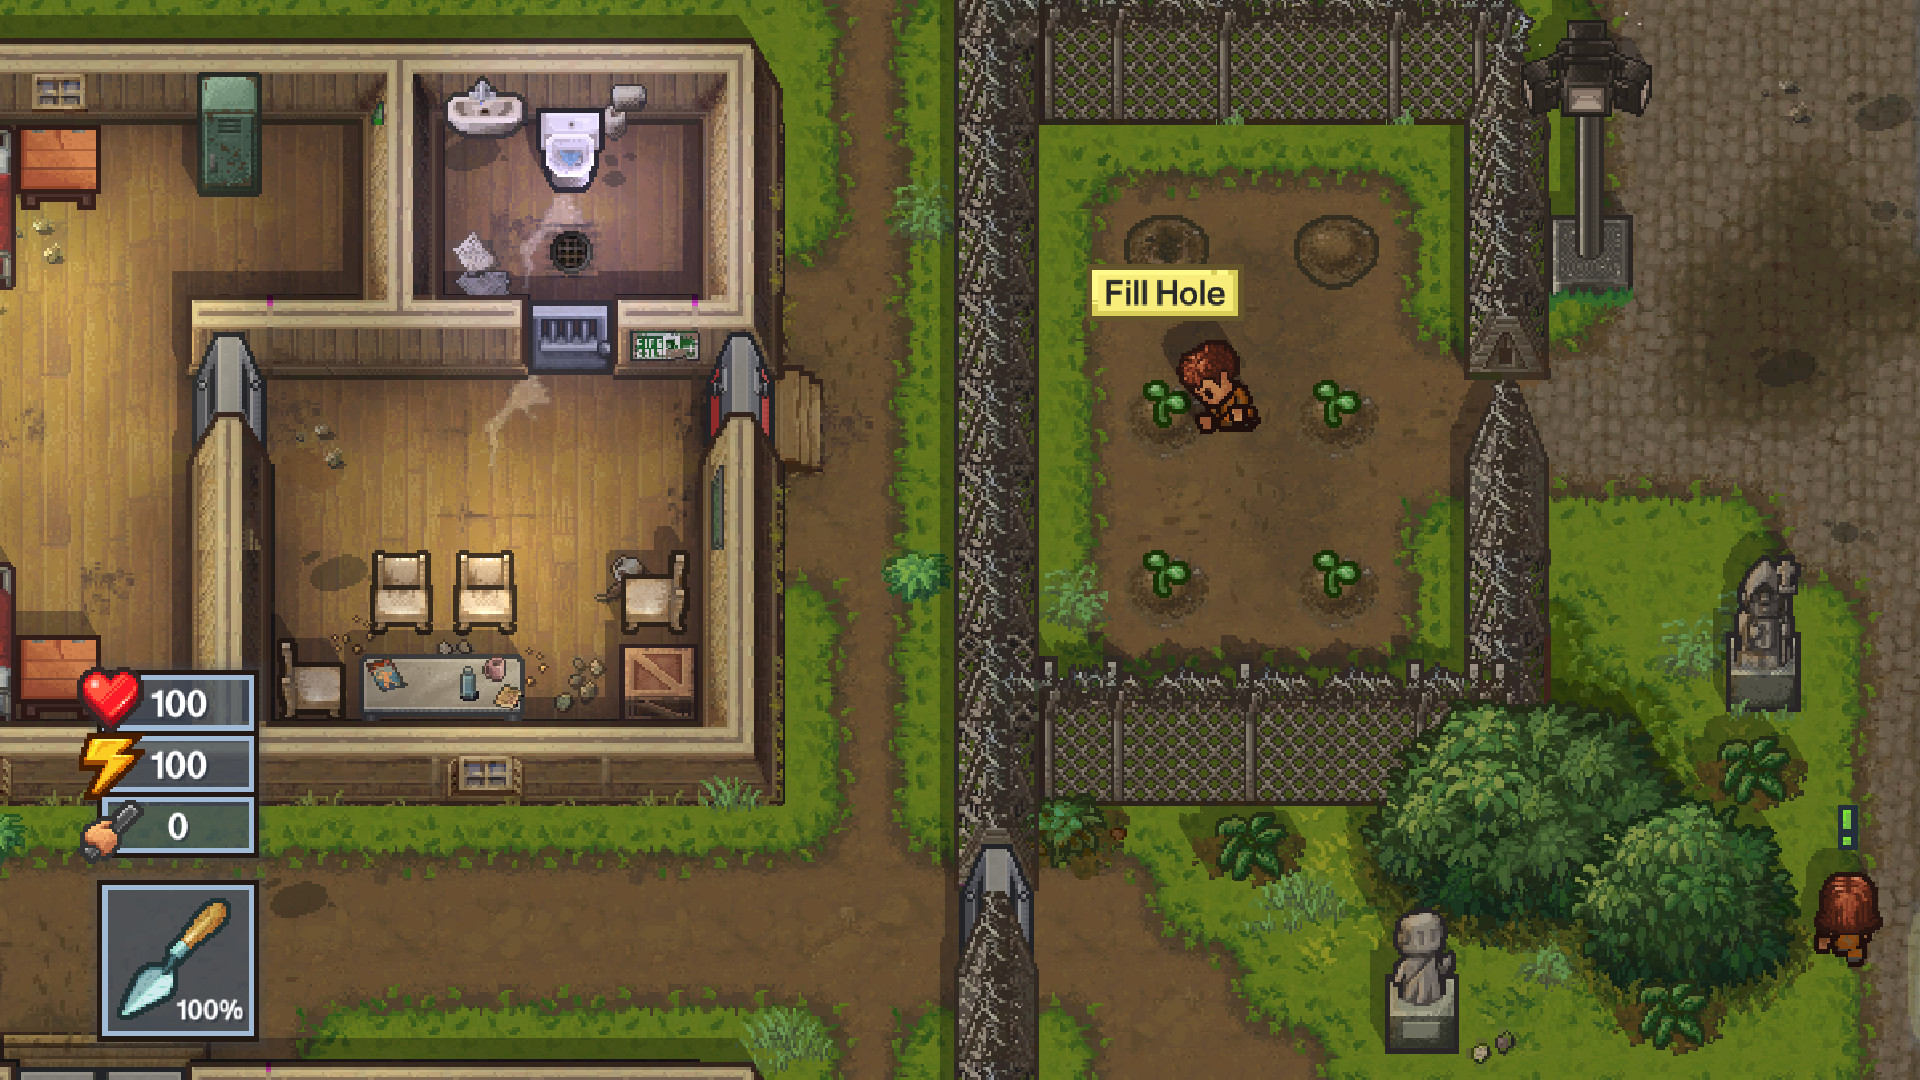 Claim The Escapists 2 for free